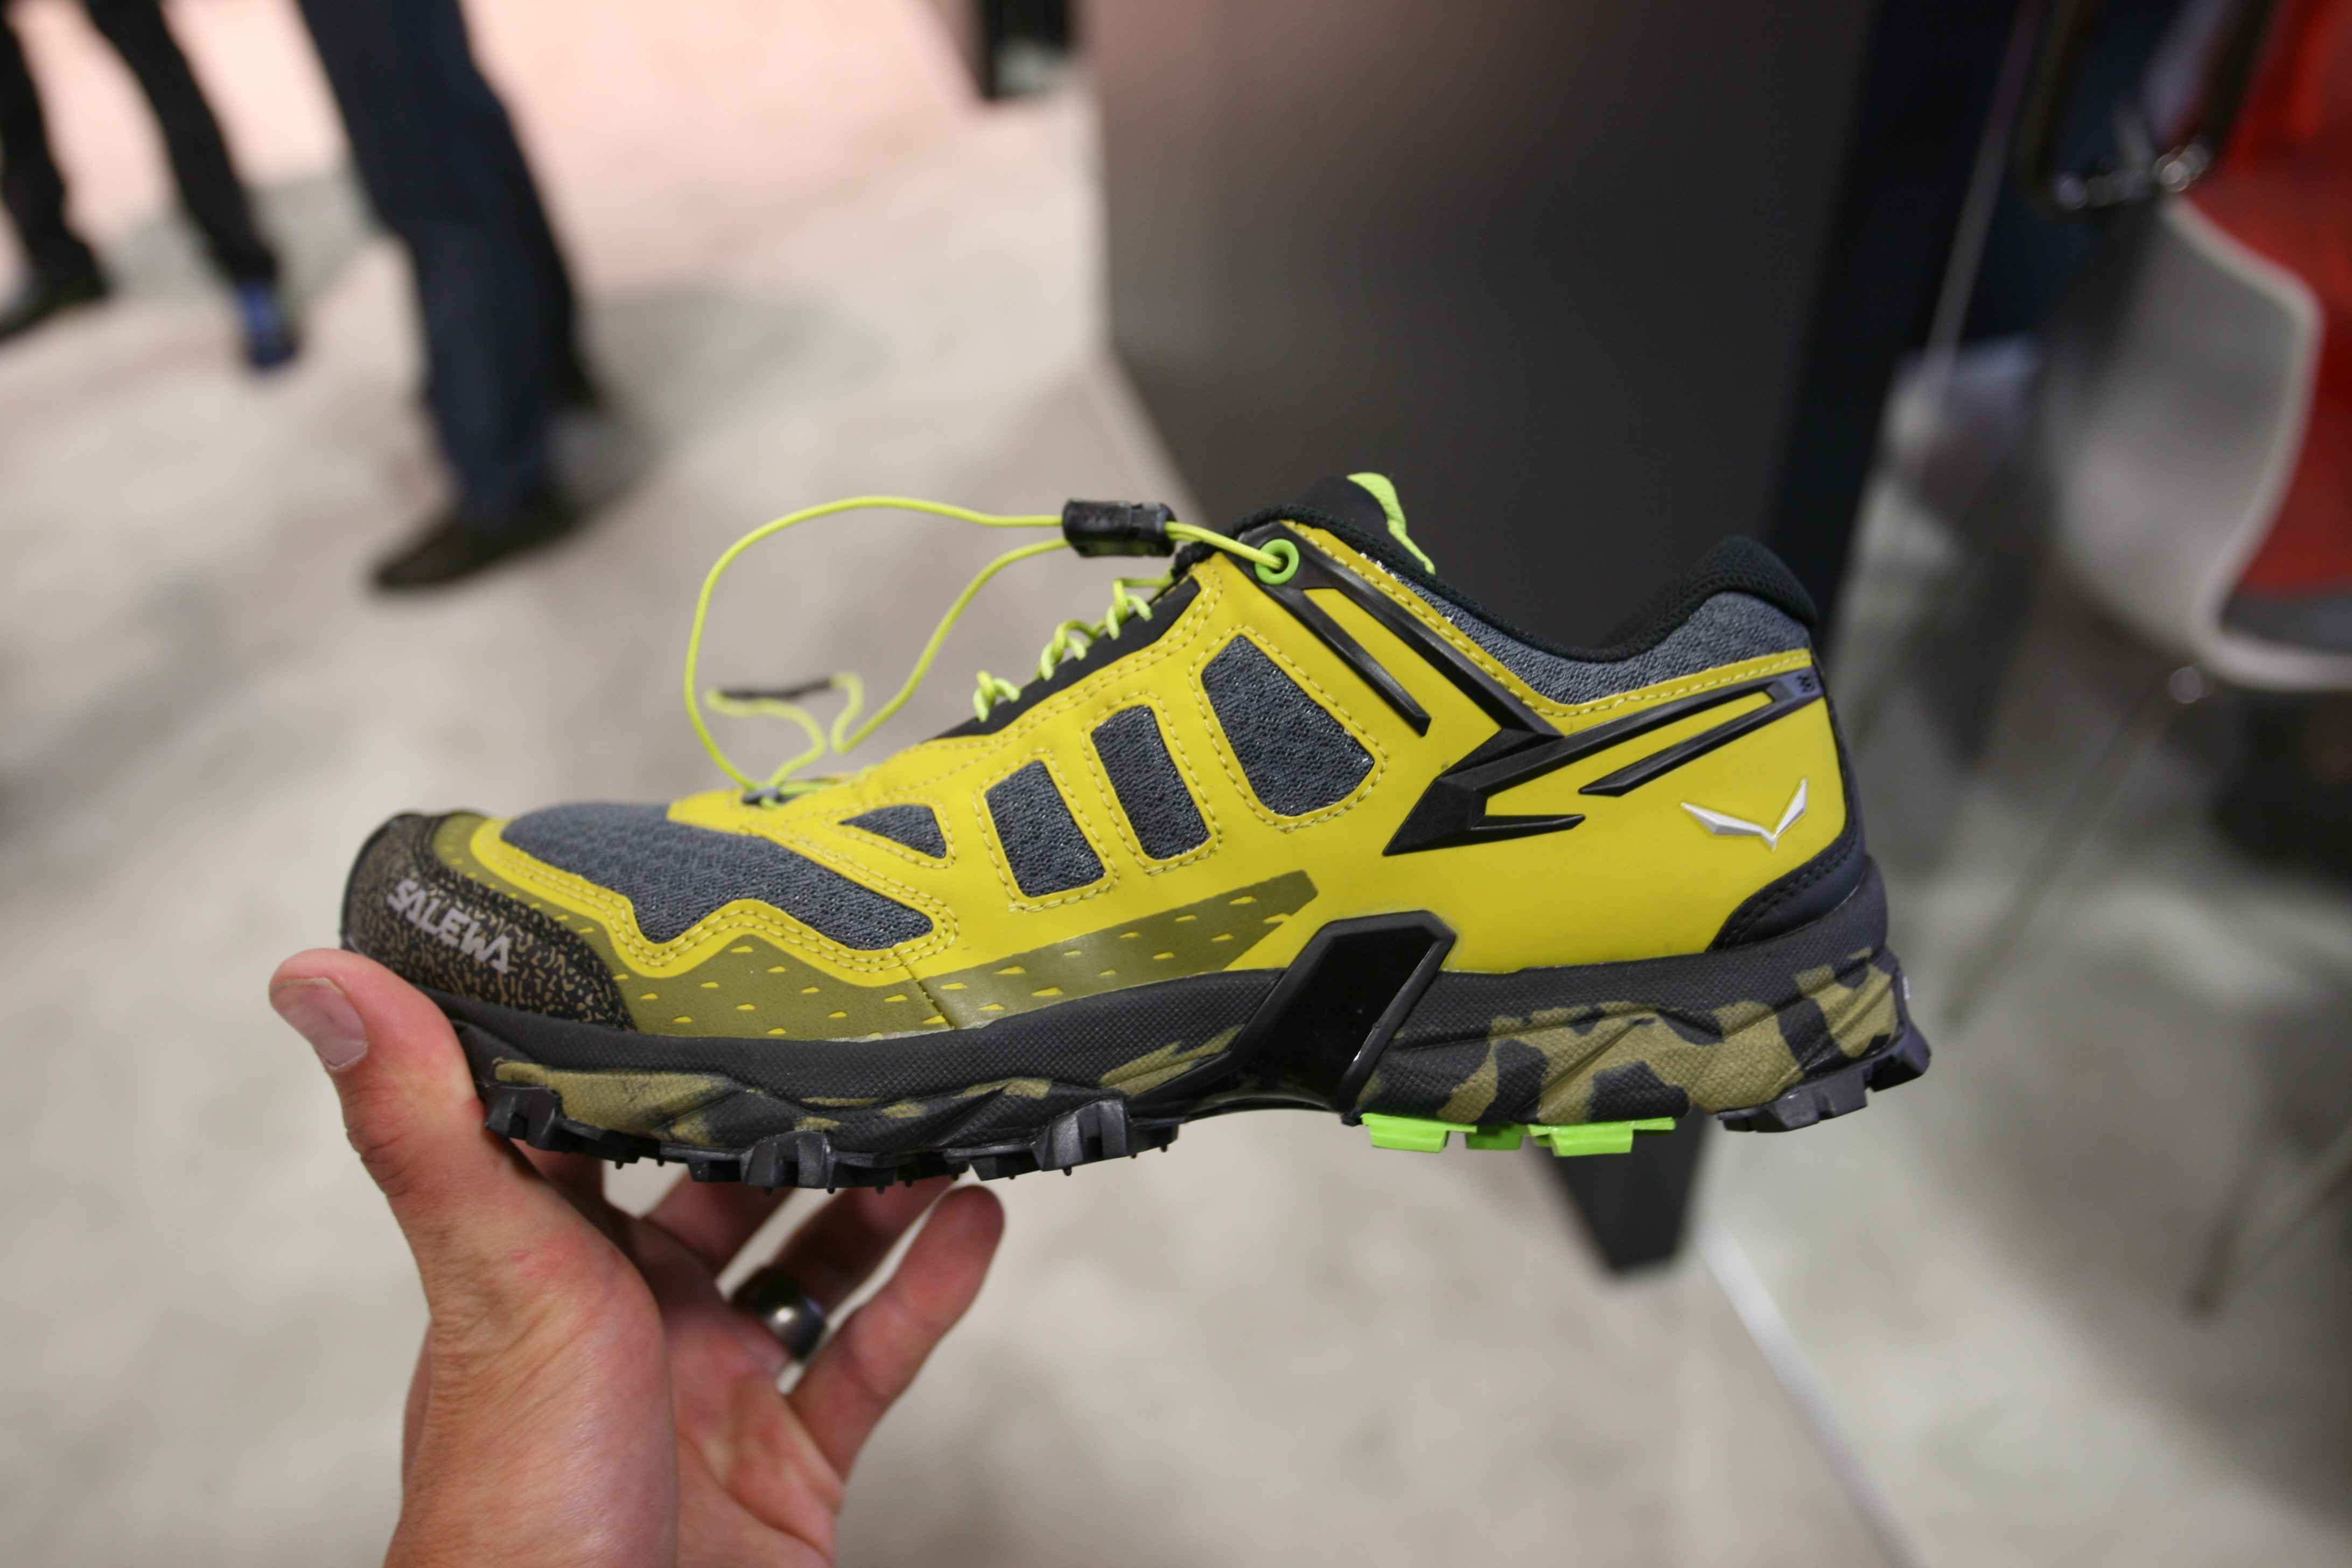 New Shoe Roundup: Mountain Running Shoes Coming in 2016